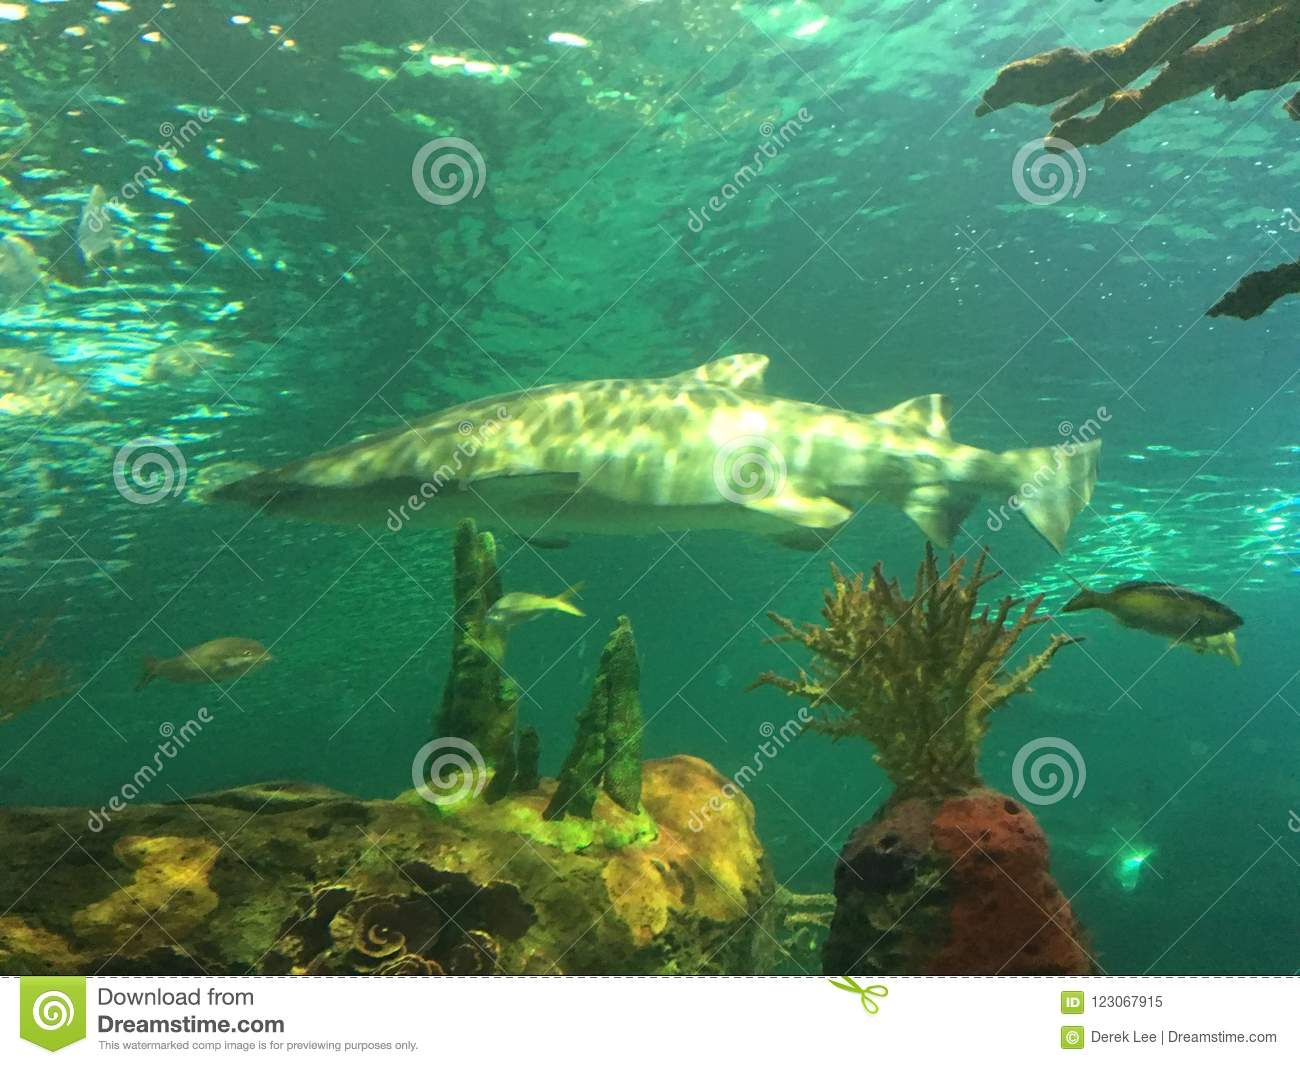 Shark swimming in a tank with other aquatic animals